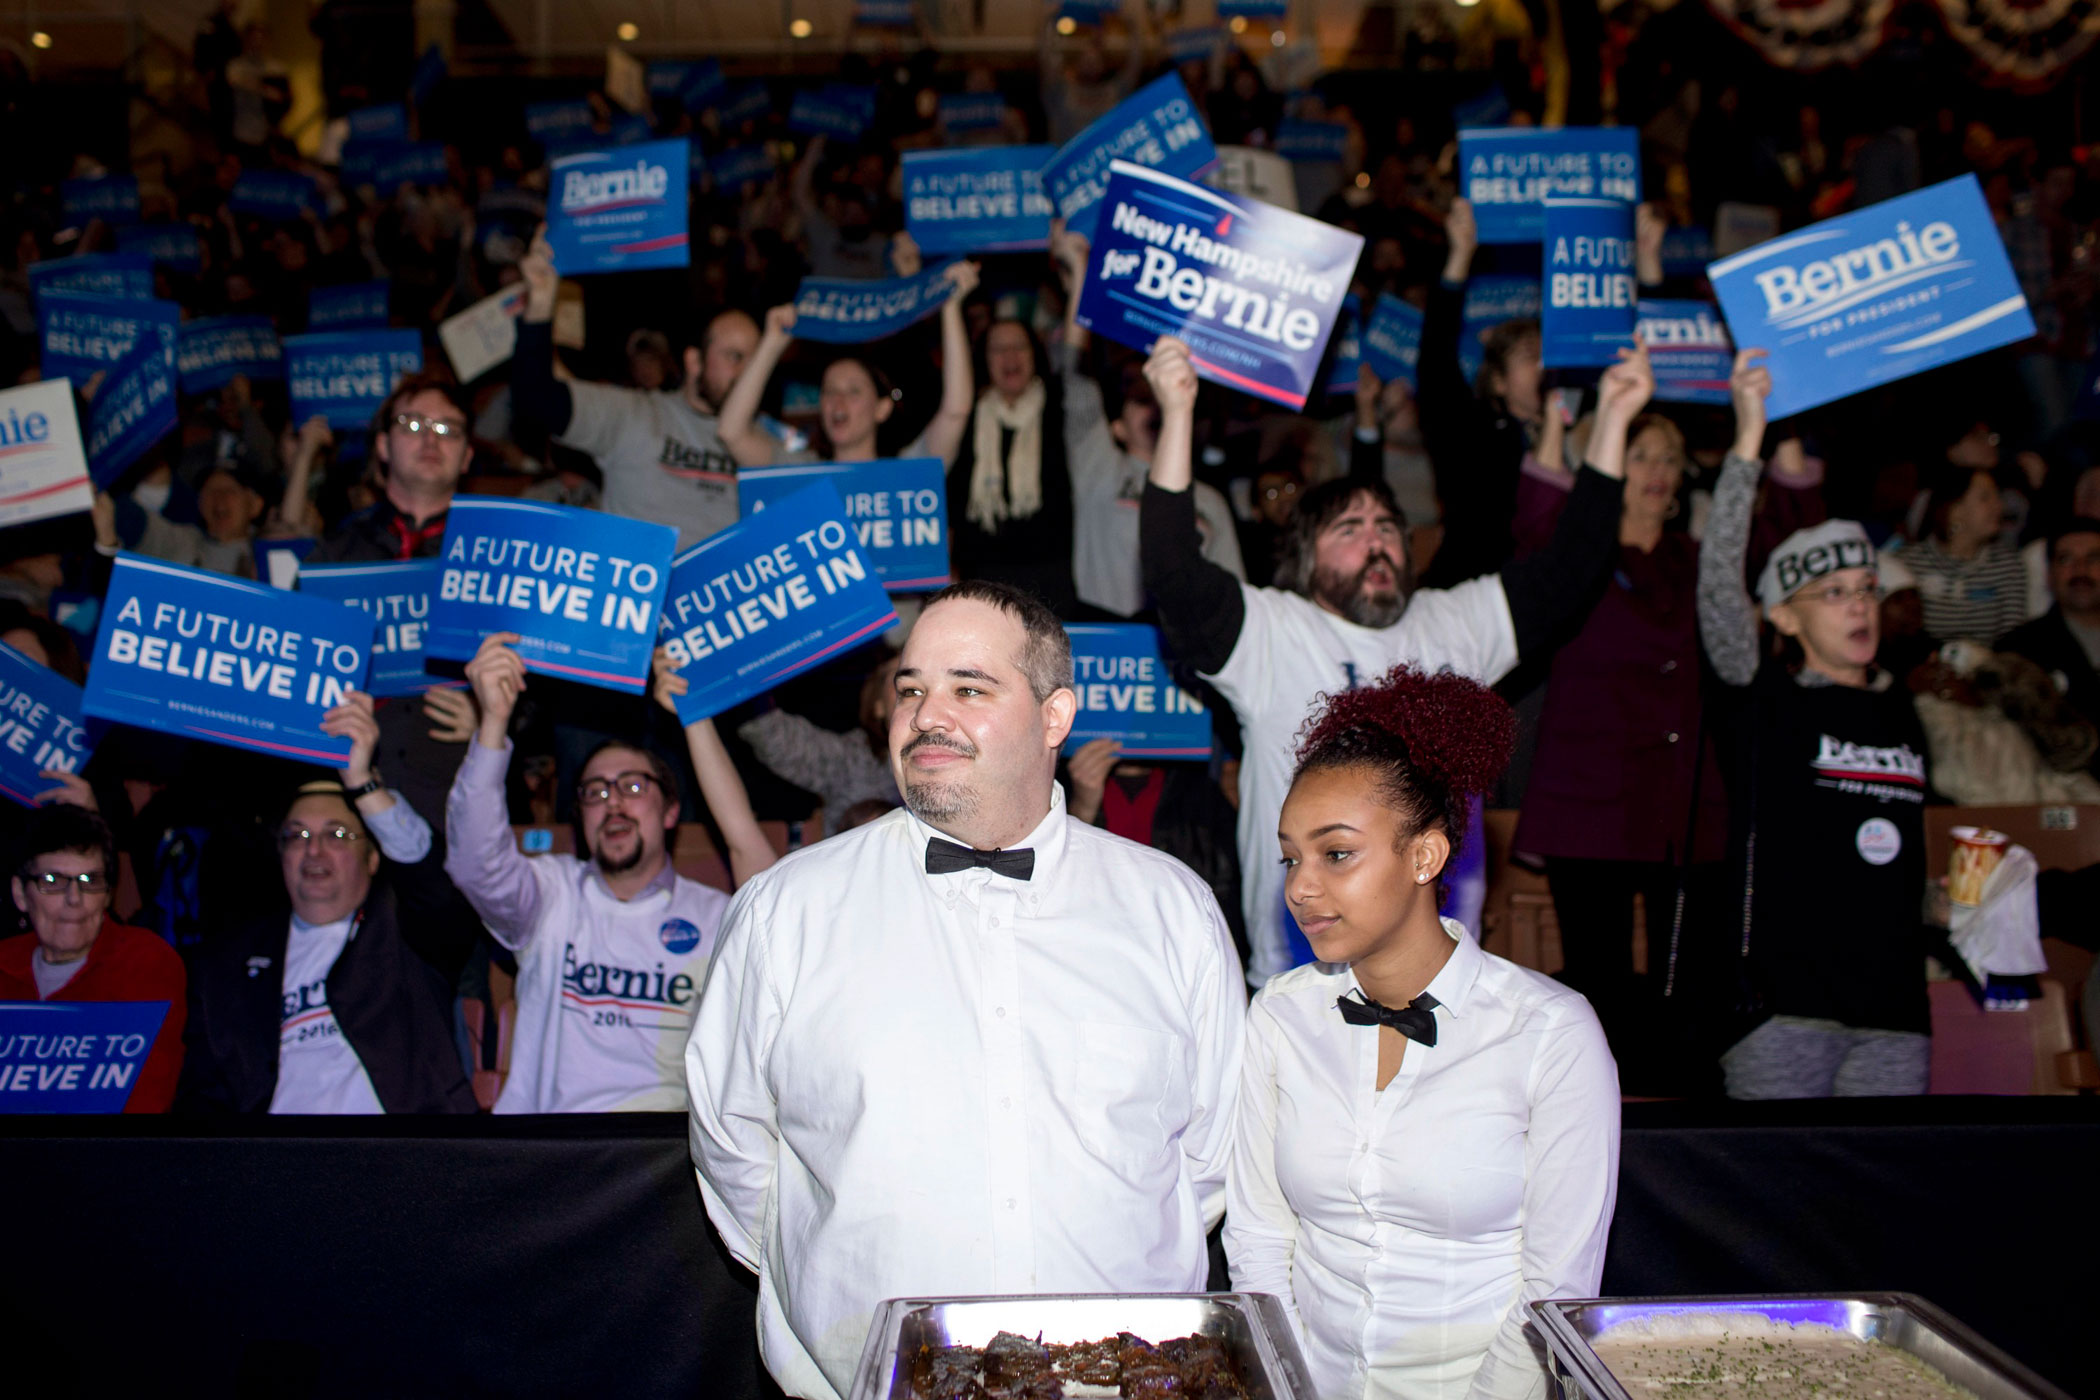 The McIntyre-Shaheen 100 Club Celebration featured Democratic presidential candidates Hillary Clinton and Bernie Sanders at the Verizon Arena in Manchester, N.H. on Feb. 5, 2016,